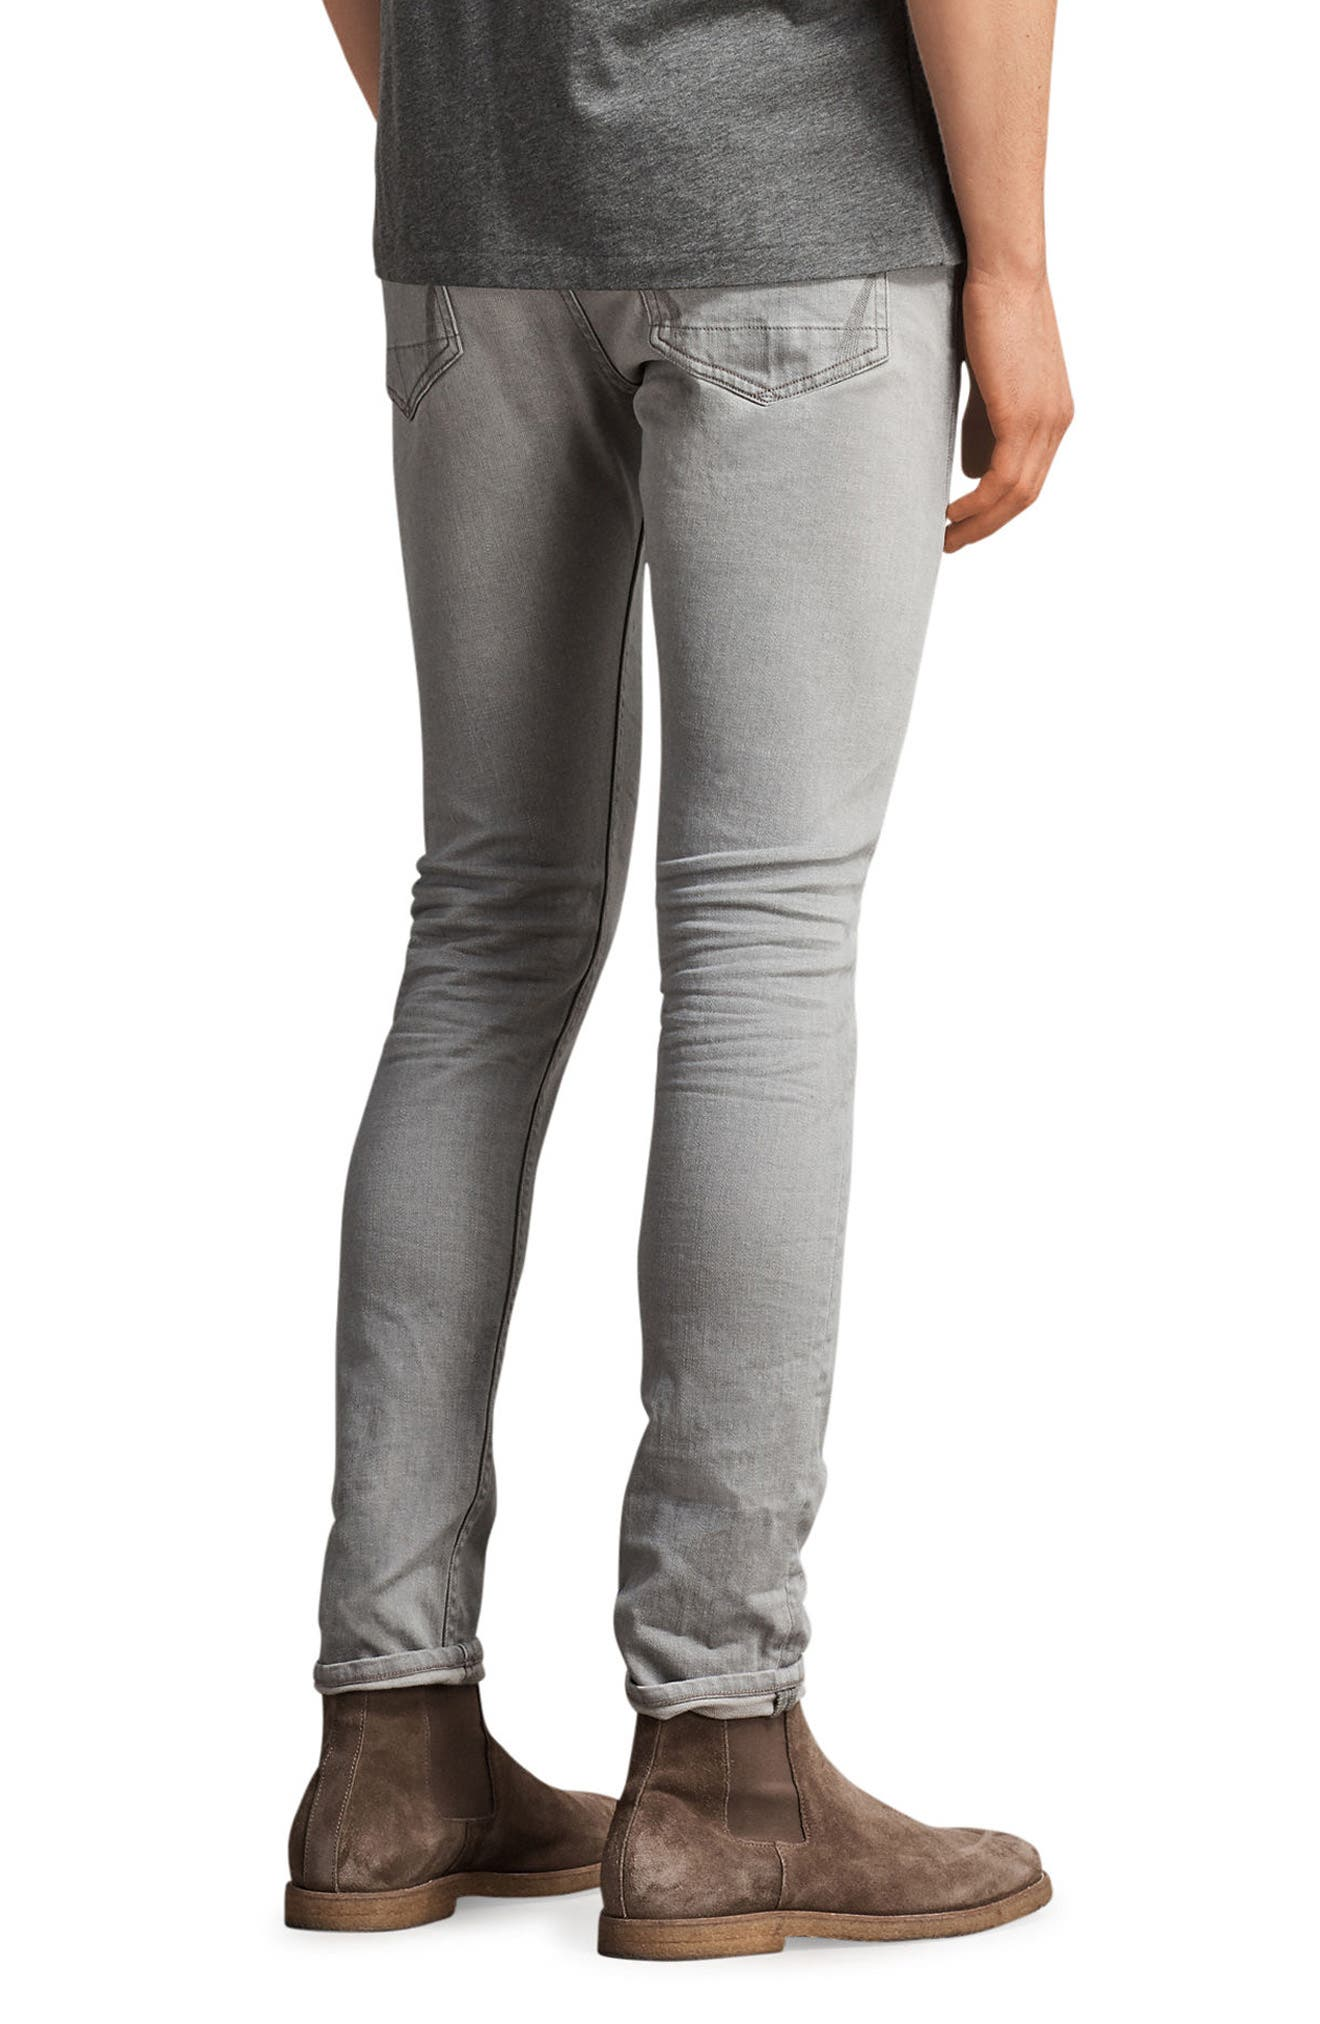 Ghoul Skinny Fit Jeans,                             Alternate thumbnail 2, color,                             Grey